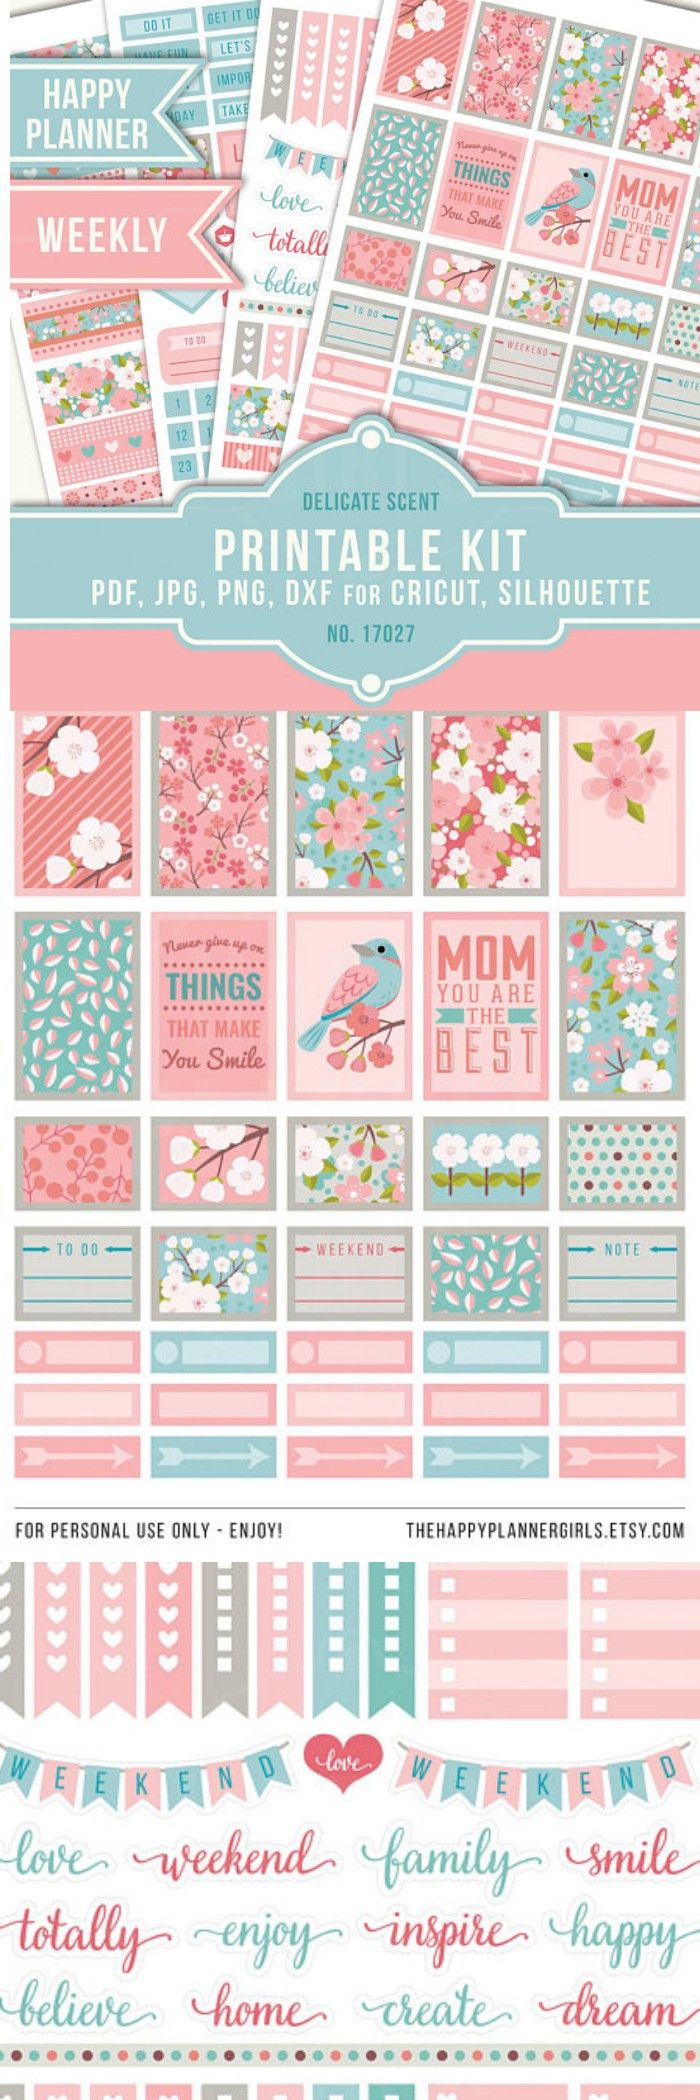 These PRINTABLE planner stickers are perfect for the MAMBI Happy Planner Classic but of course they can be used in other type of planners as well (Filofax, Kikki K, Plum Paper Planner etc.). Printable Planner Stickers, May Weekly Kit, May Planner Stickers, Floral Planner Stickers, Cherry Blossom Planner Stickers #stickers #bulletjournals #ad #printable #hellospring #bujo #happyplanner #cutfiles #etsy